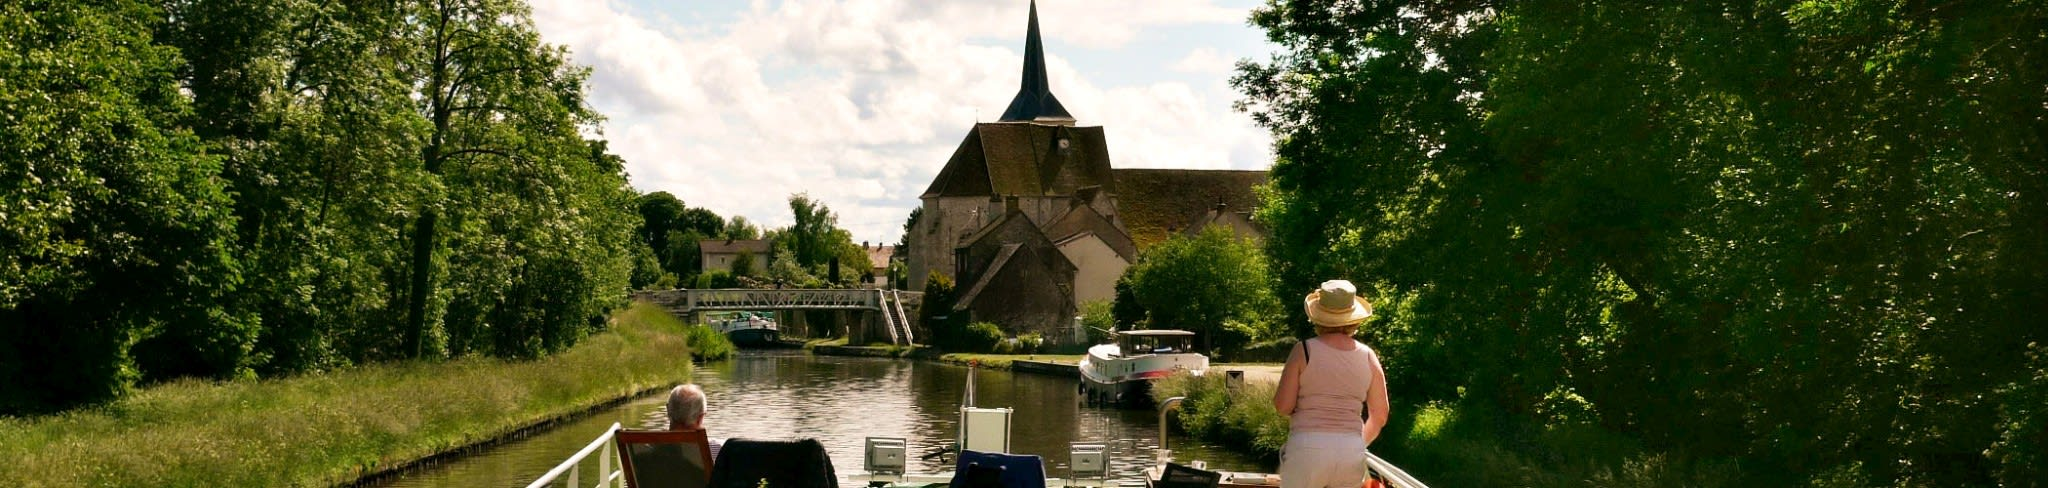 Upper Loire cruise, arriving at Montbouy